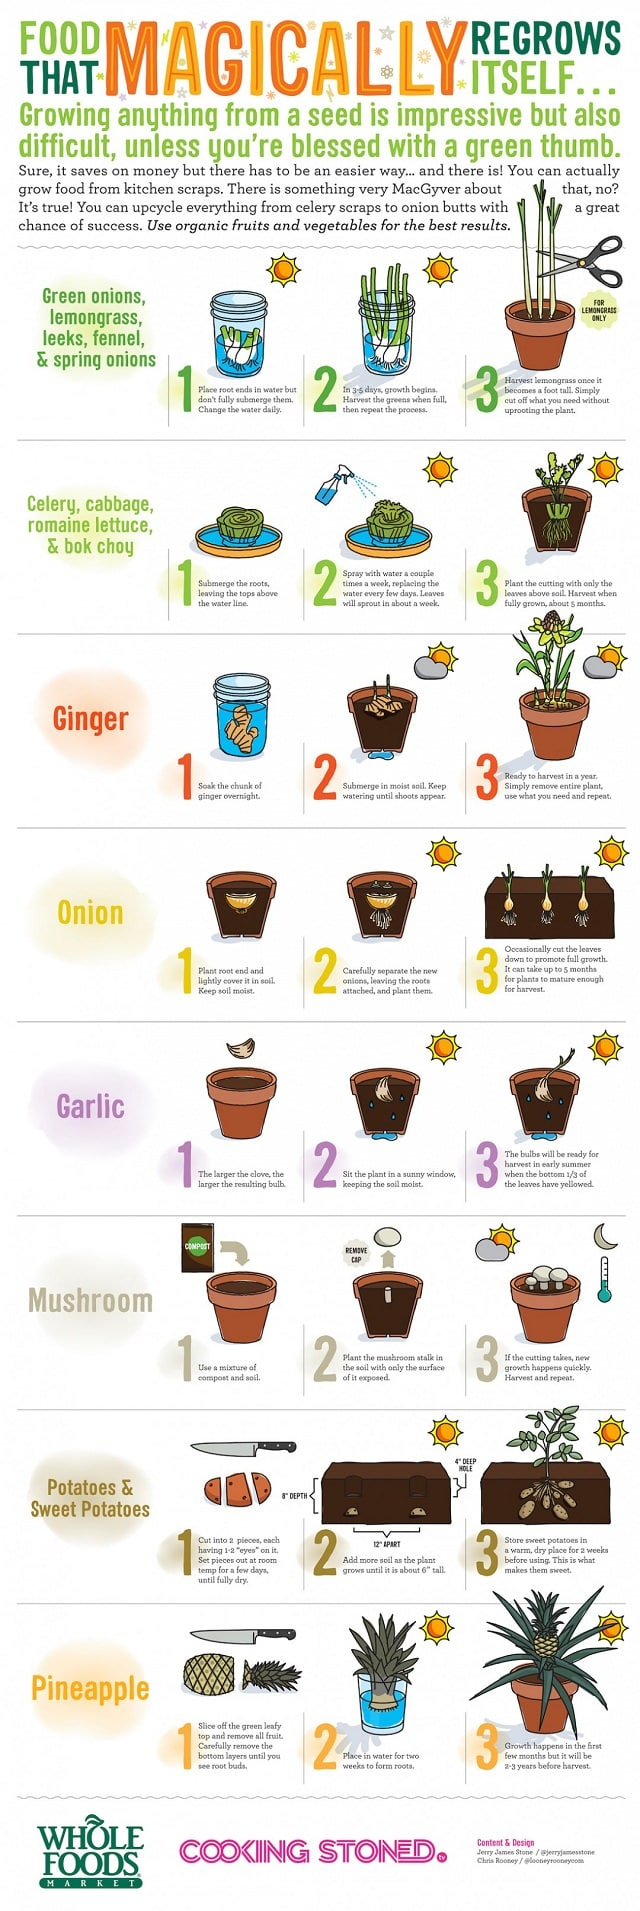 regrow-food-from-kitchen-scraps-infographic